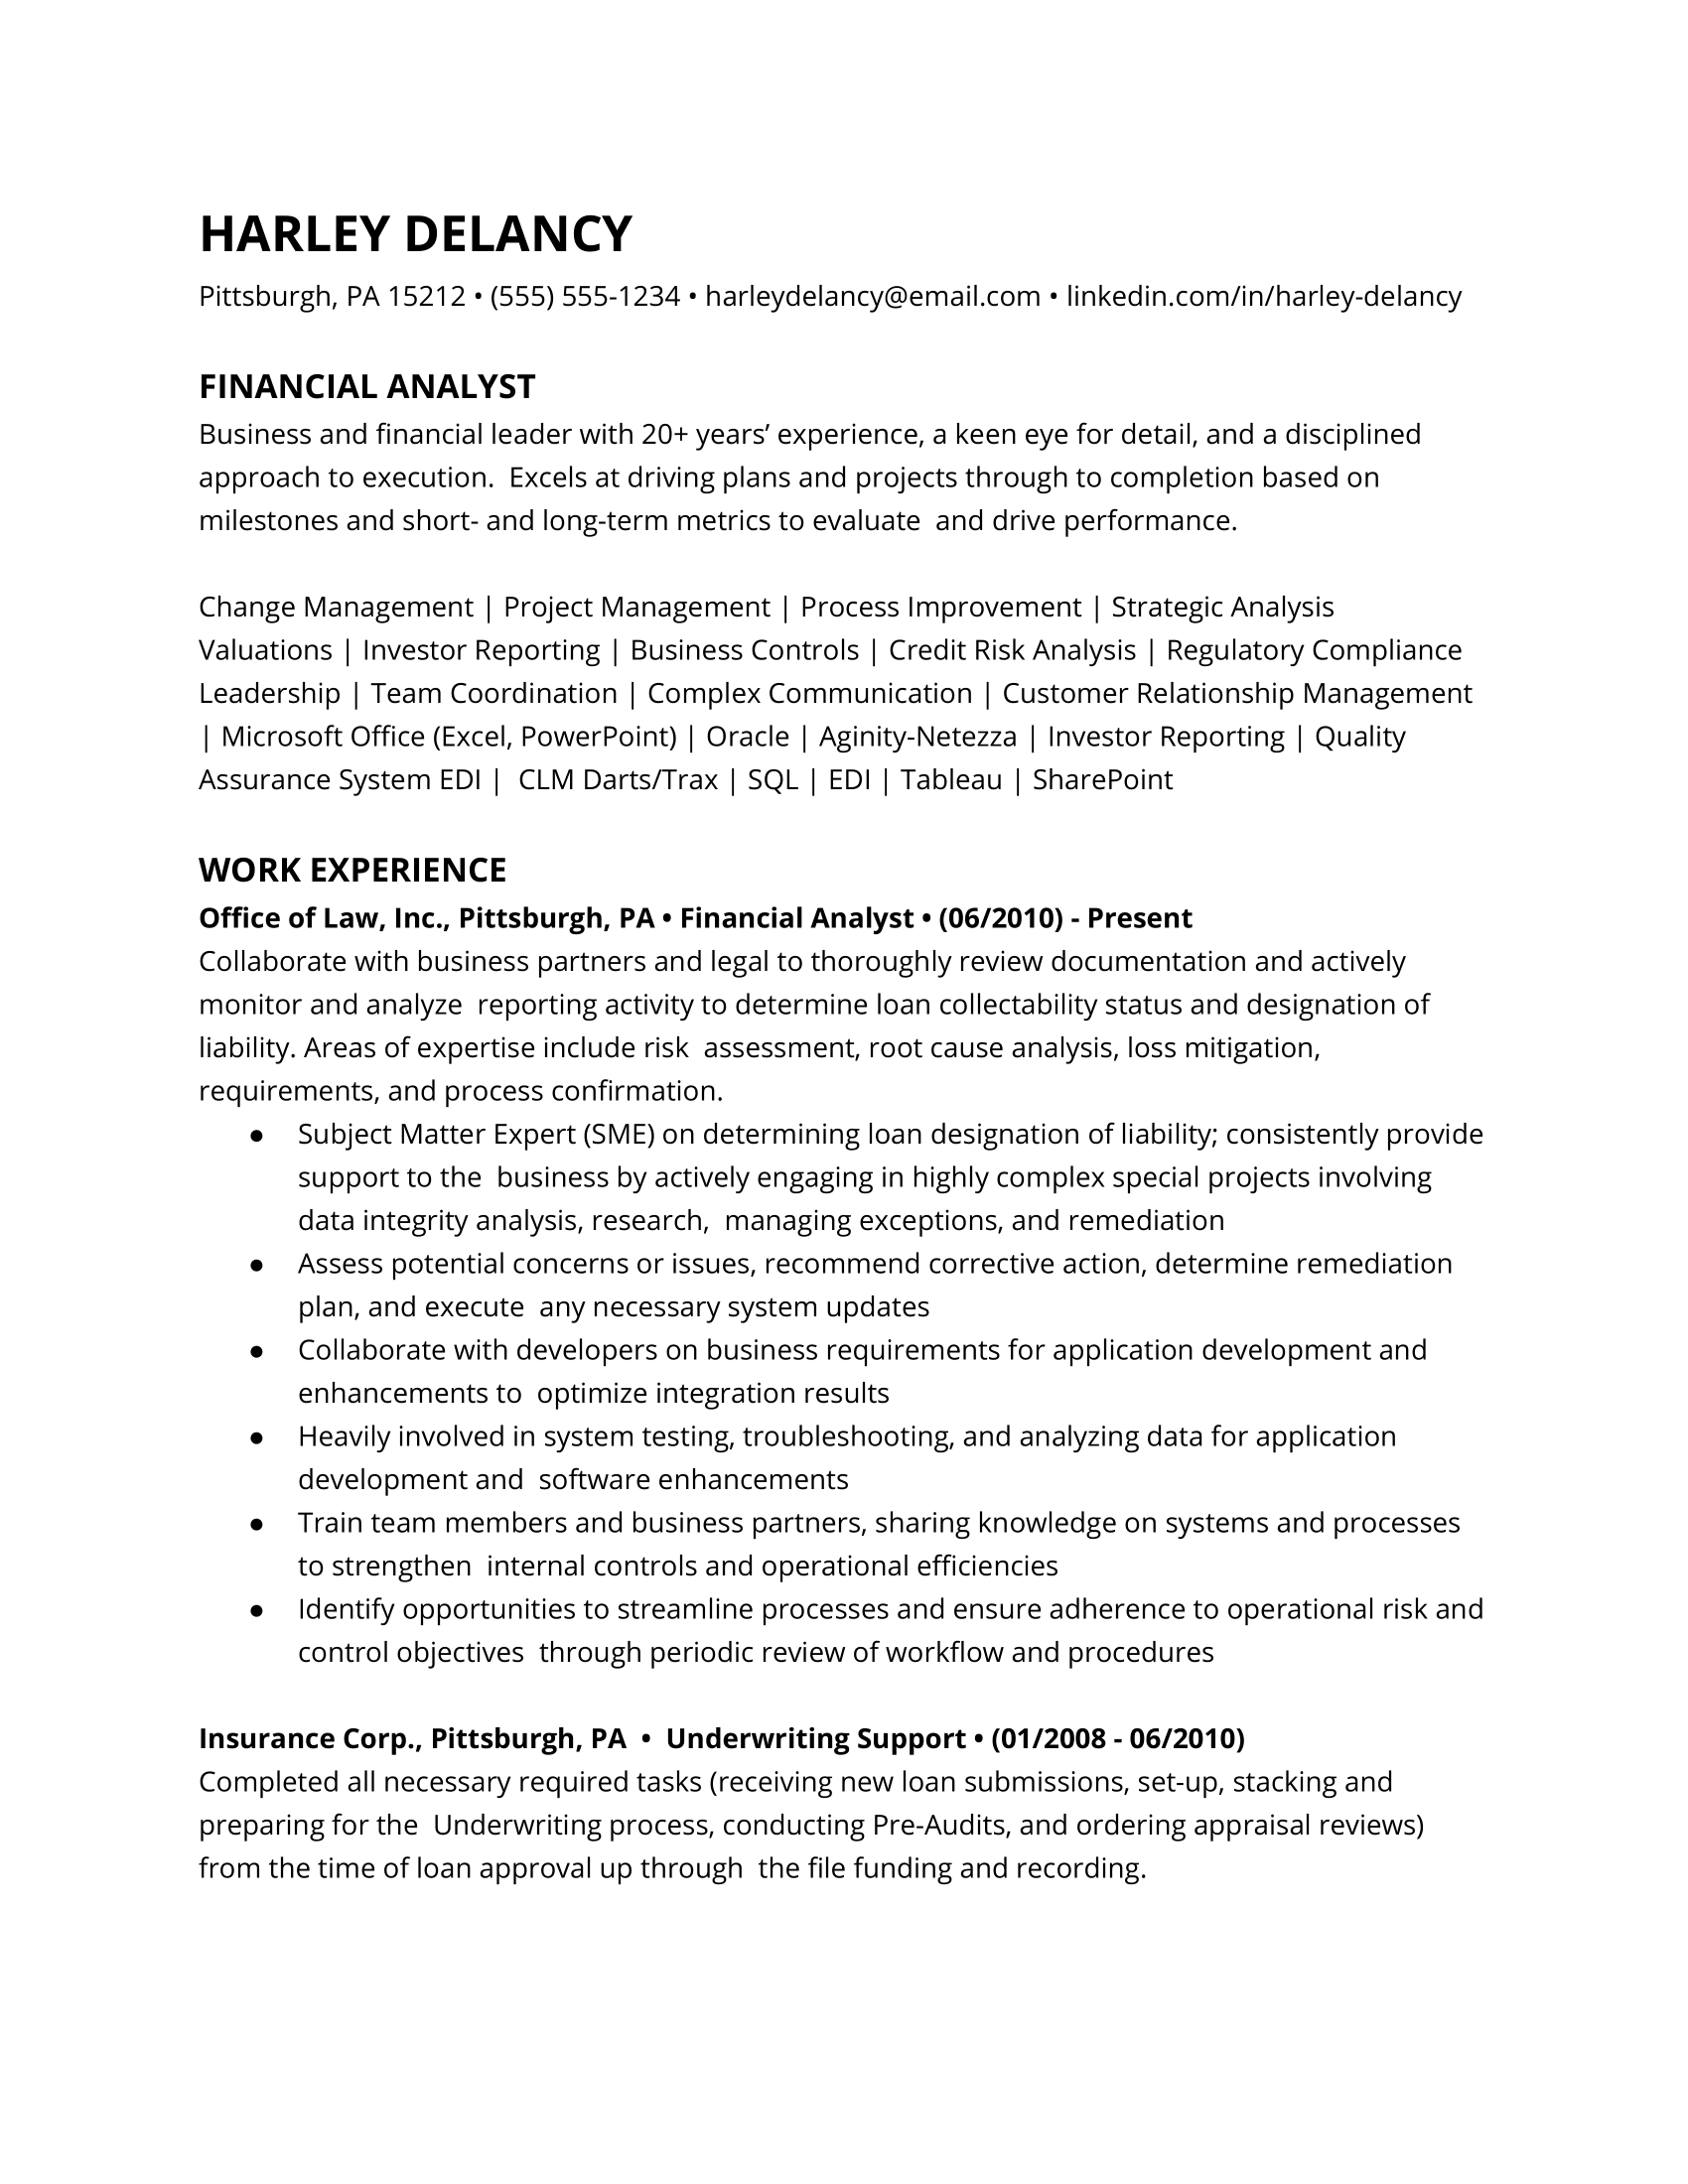 Financial Analyst Resume Example 1